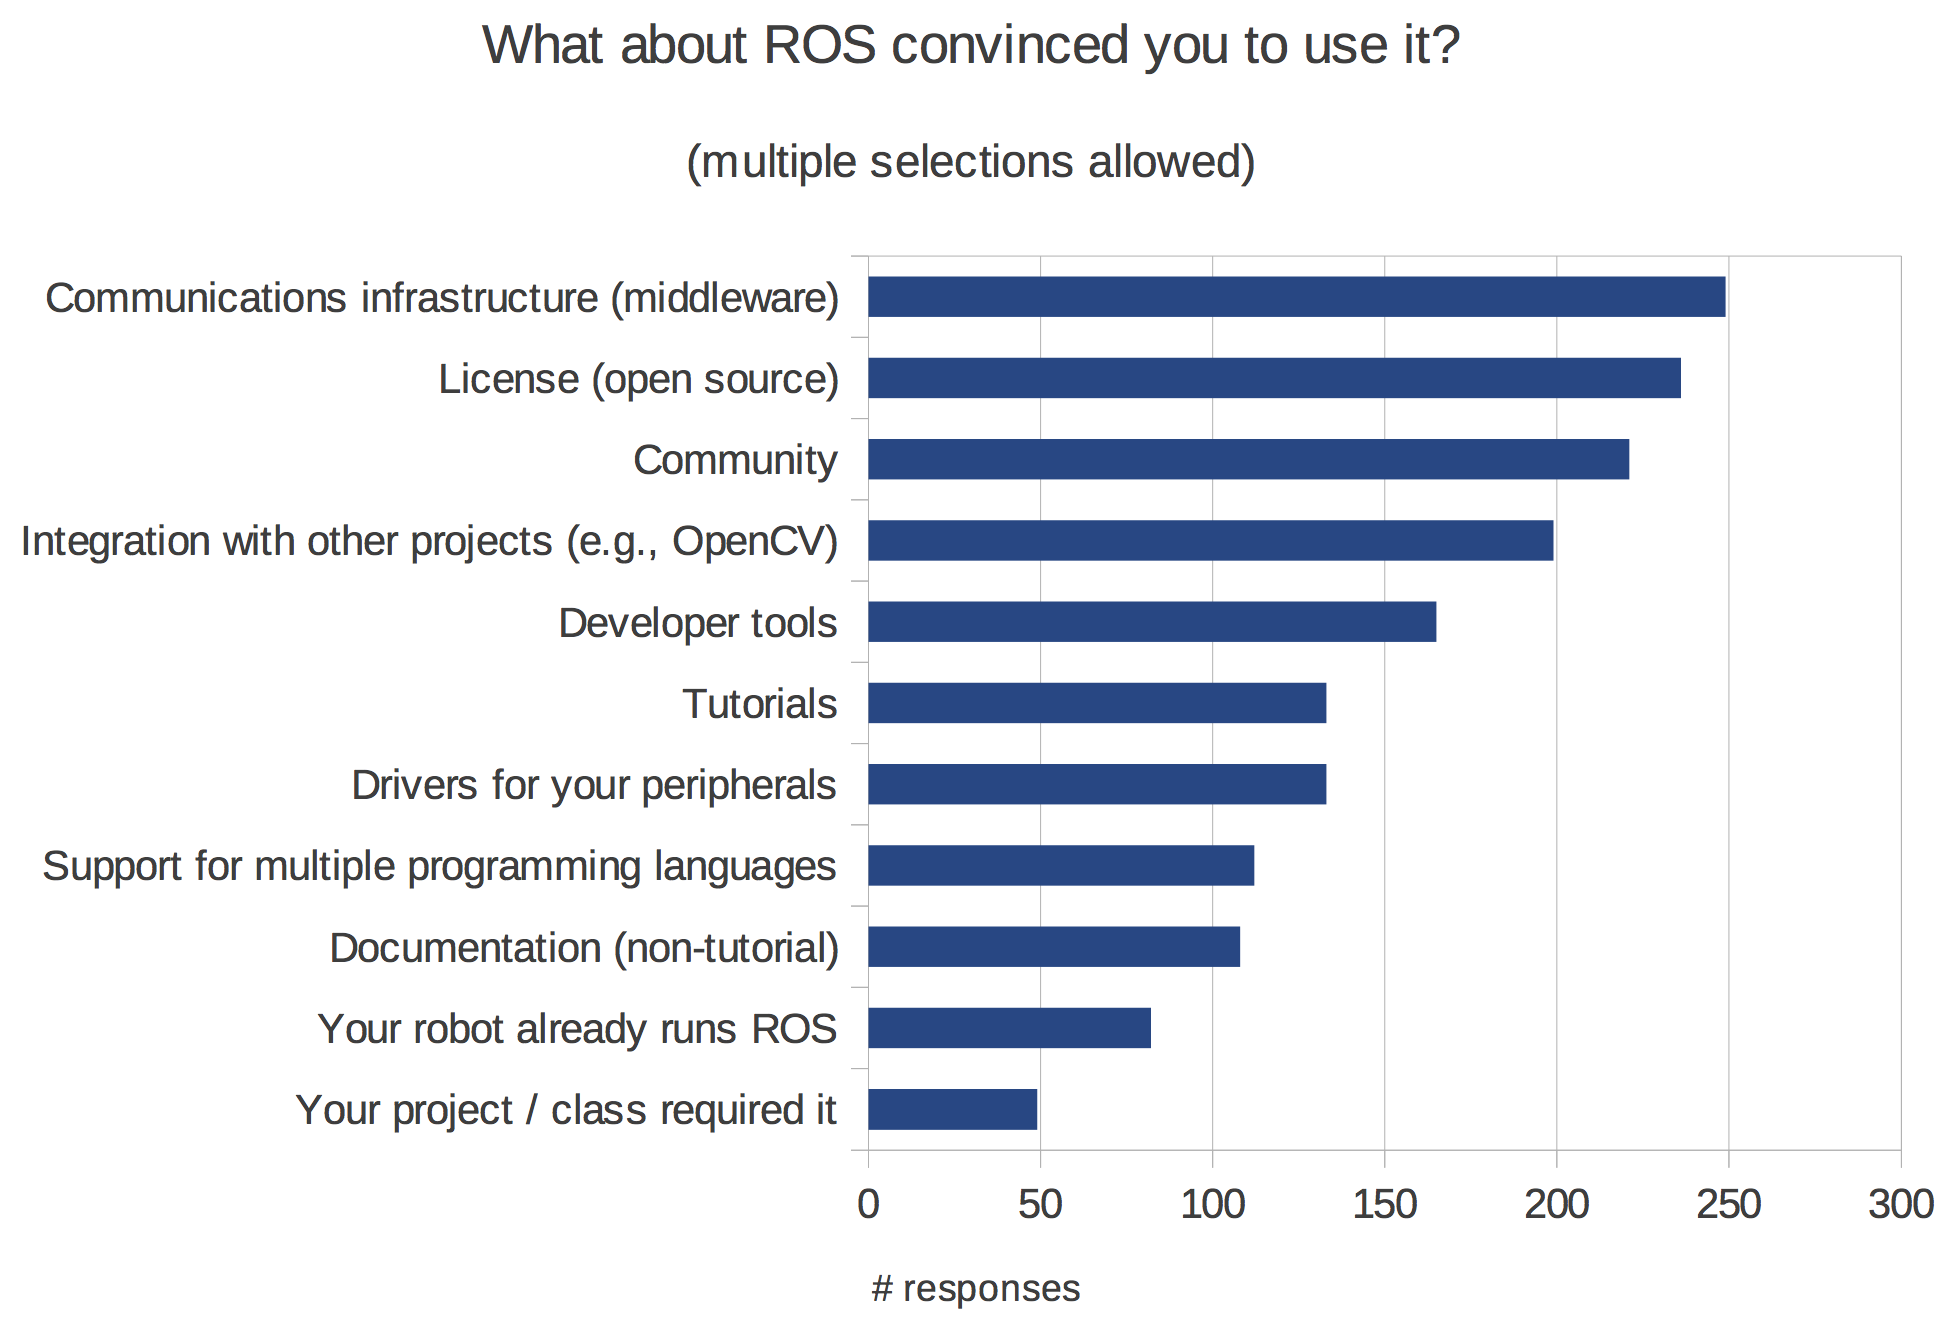 http://www.ros.org/news/2014/04/01/what-about-ros.png